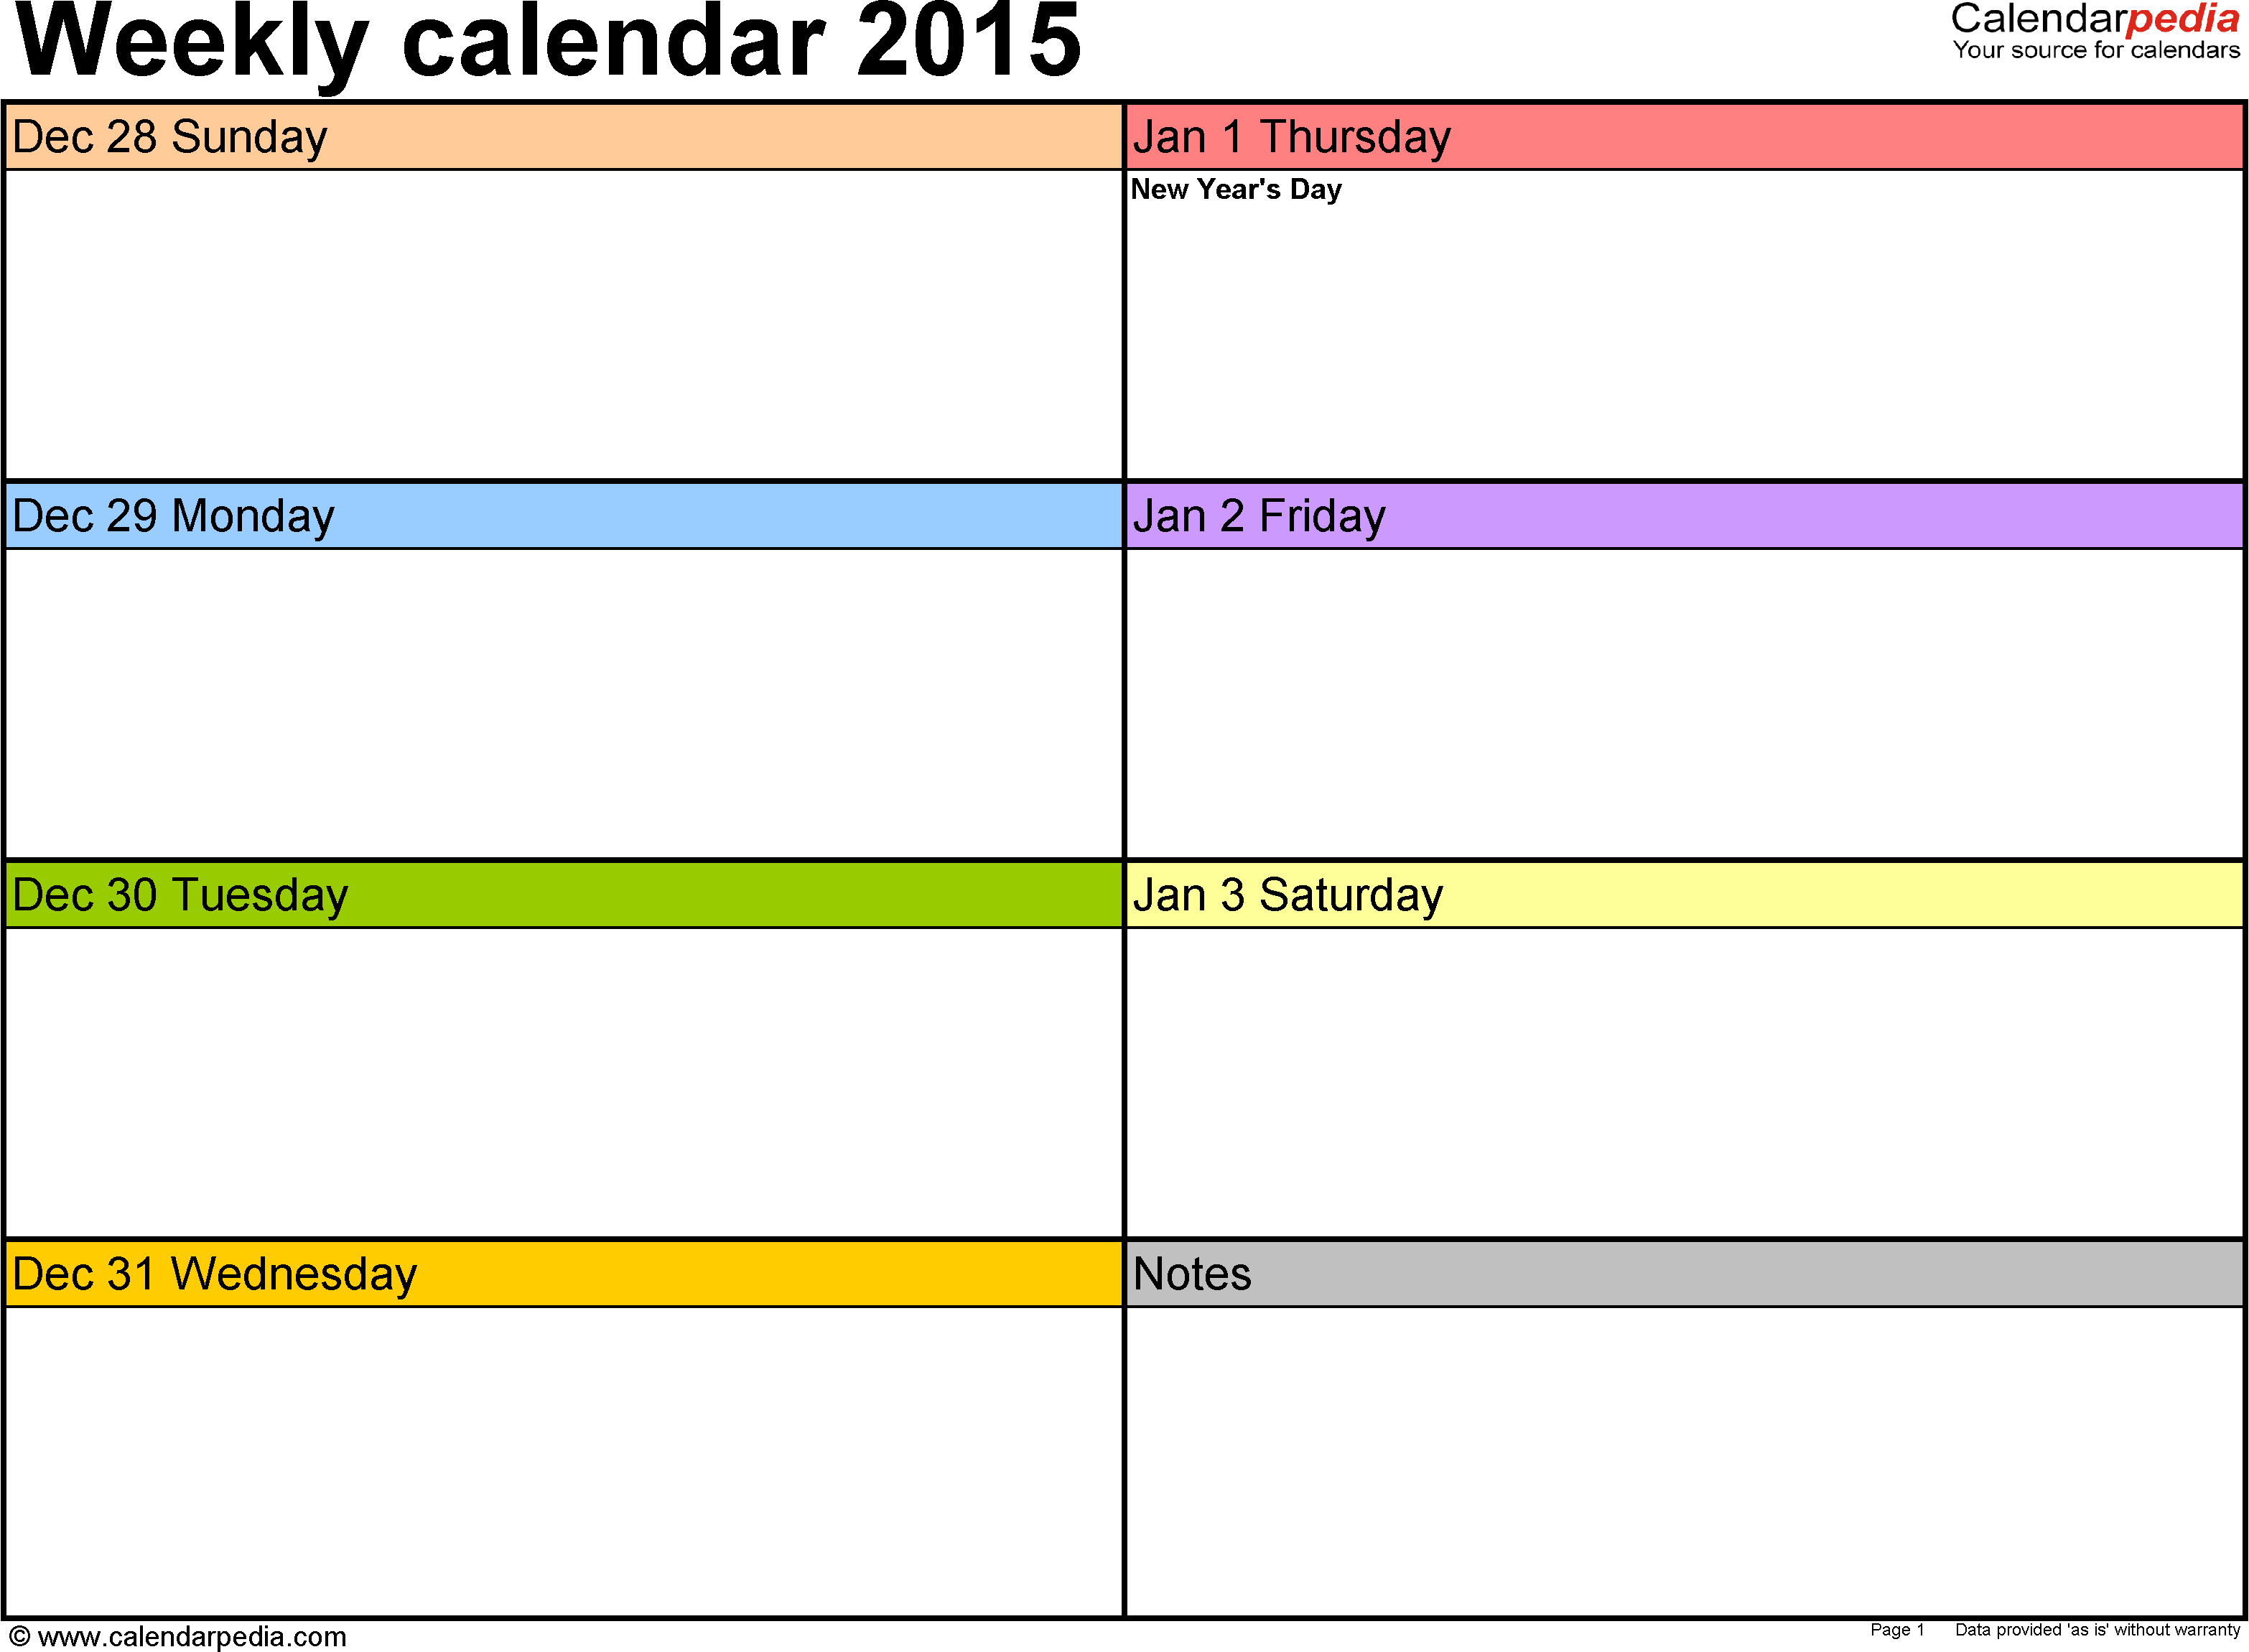 Weekly Calendar 2015 For Pdf - 12 Free Printable Templates within 5 Day Calendar Template Free